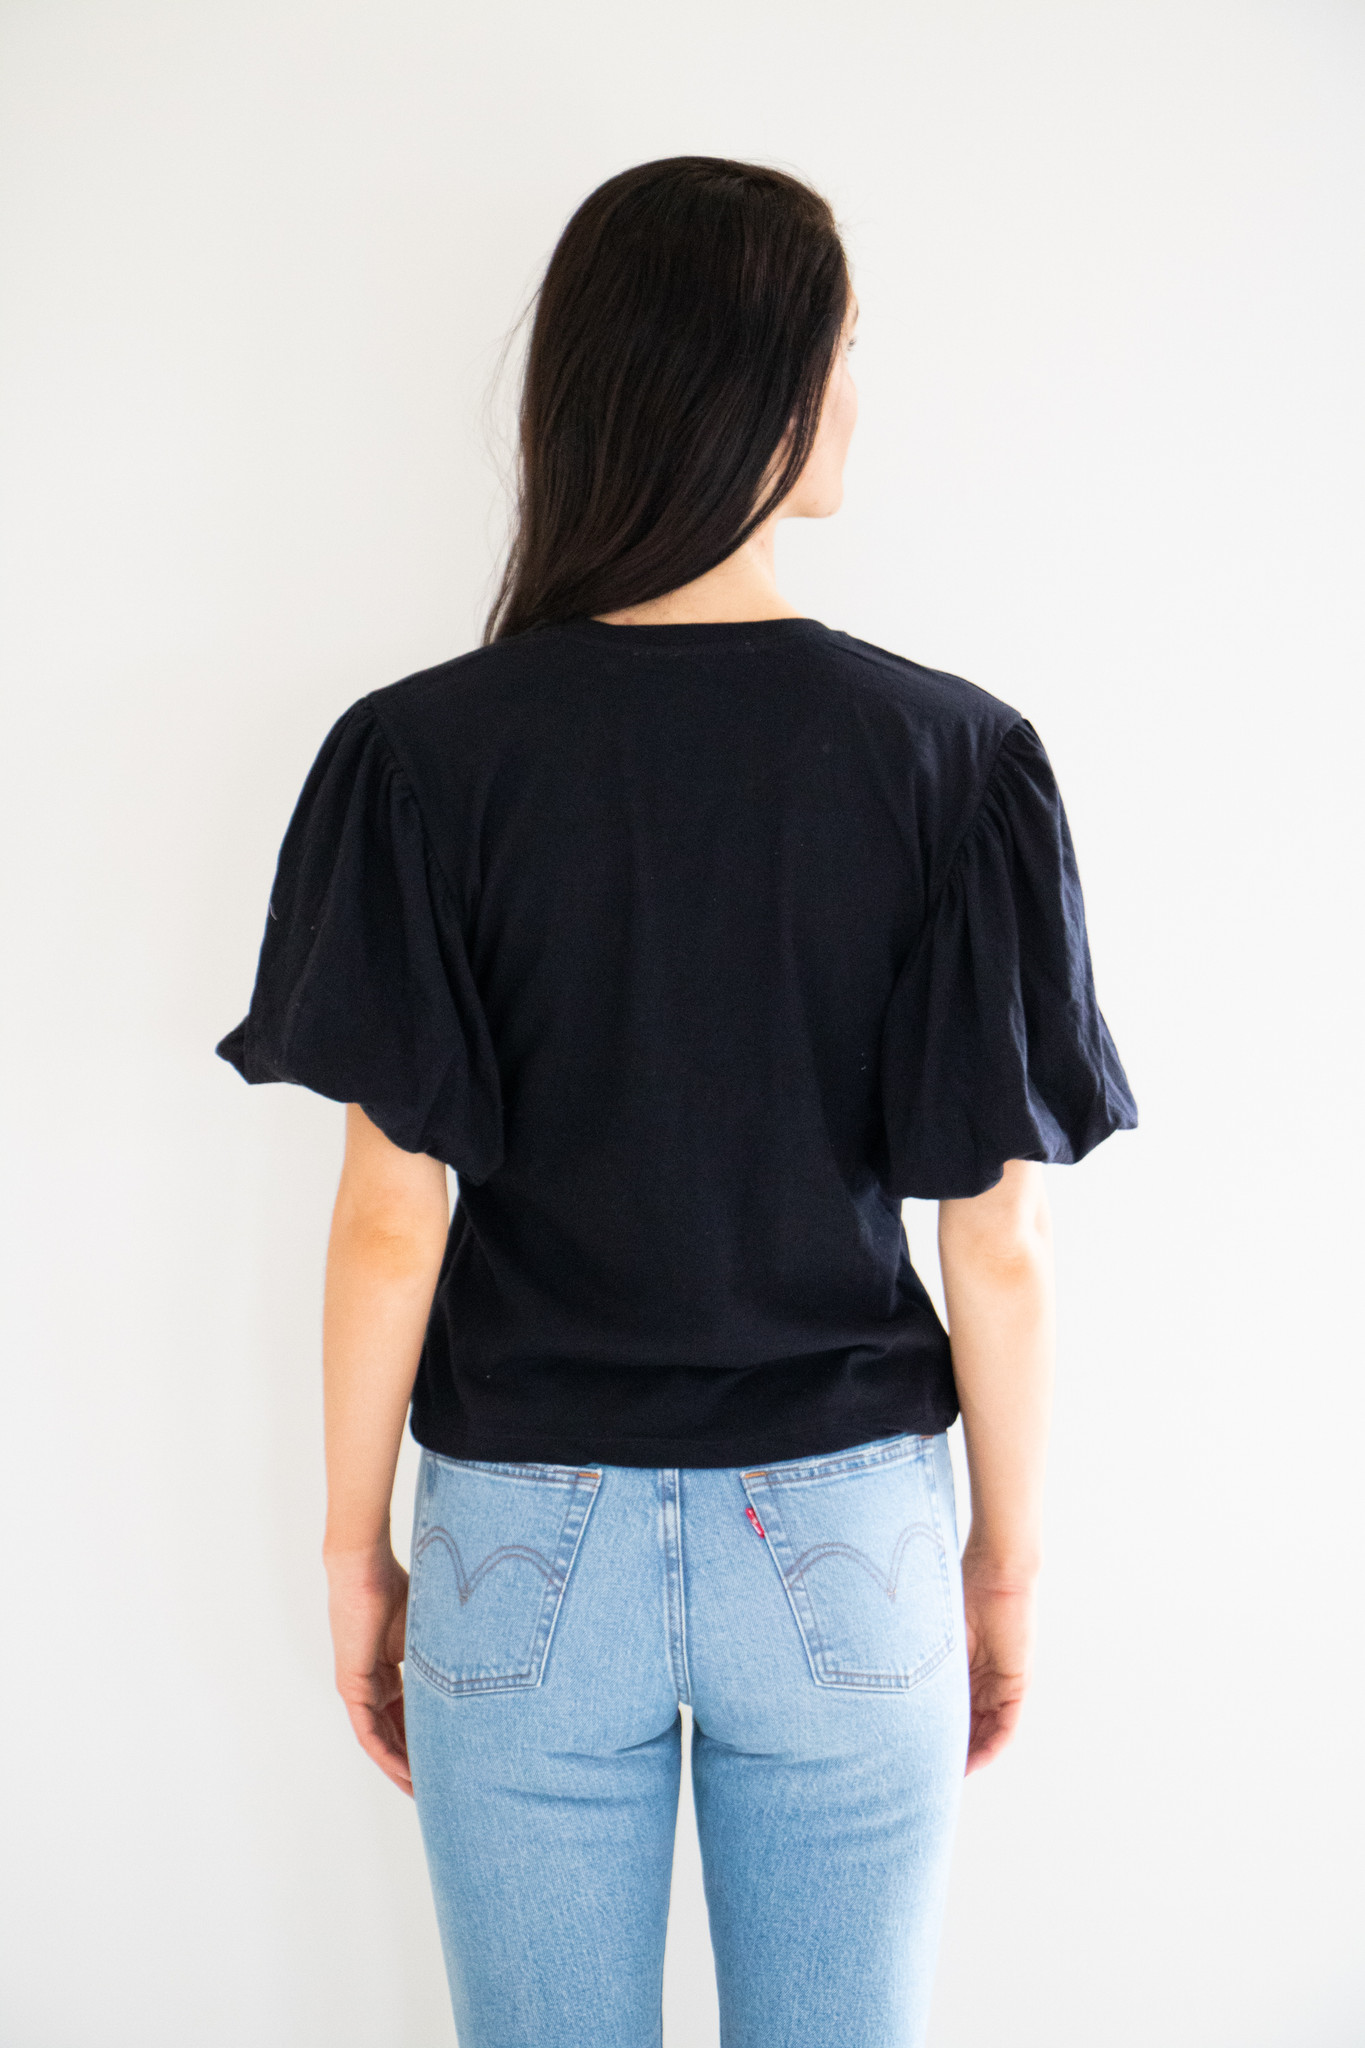 Peplum sleeve details add a feminine edge to this basic tee. Slightly boxy though the body with a finished crew neck, easily parable and comes in classic black and white.